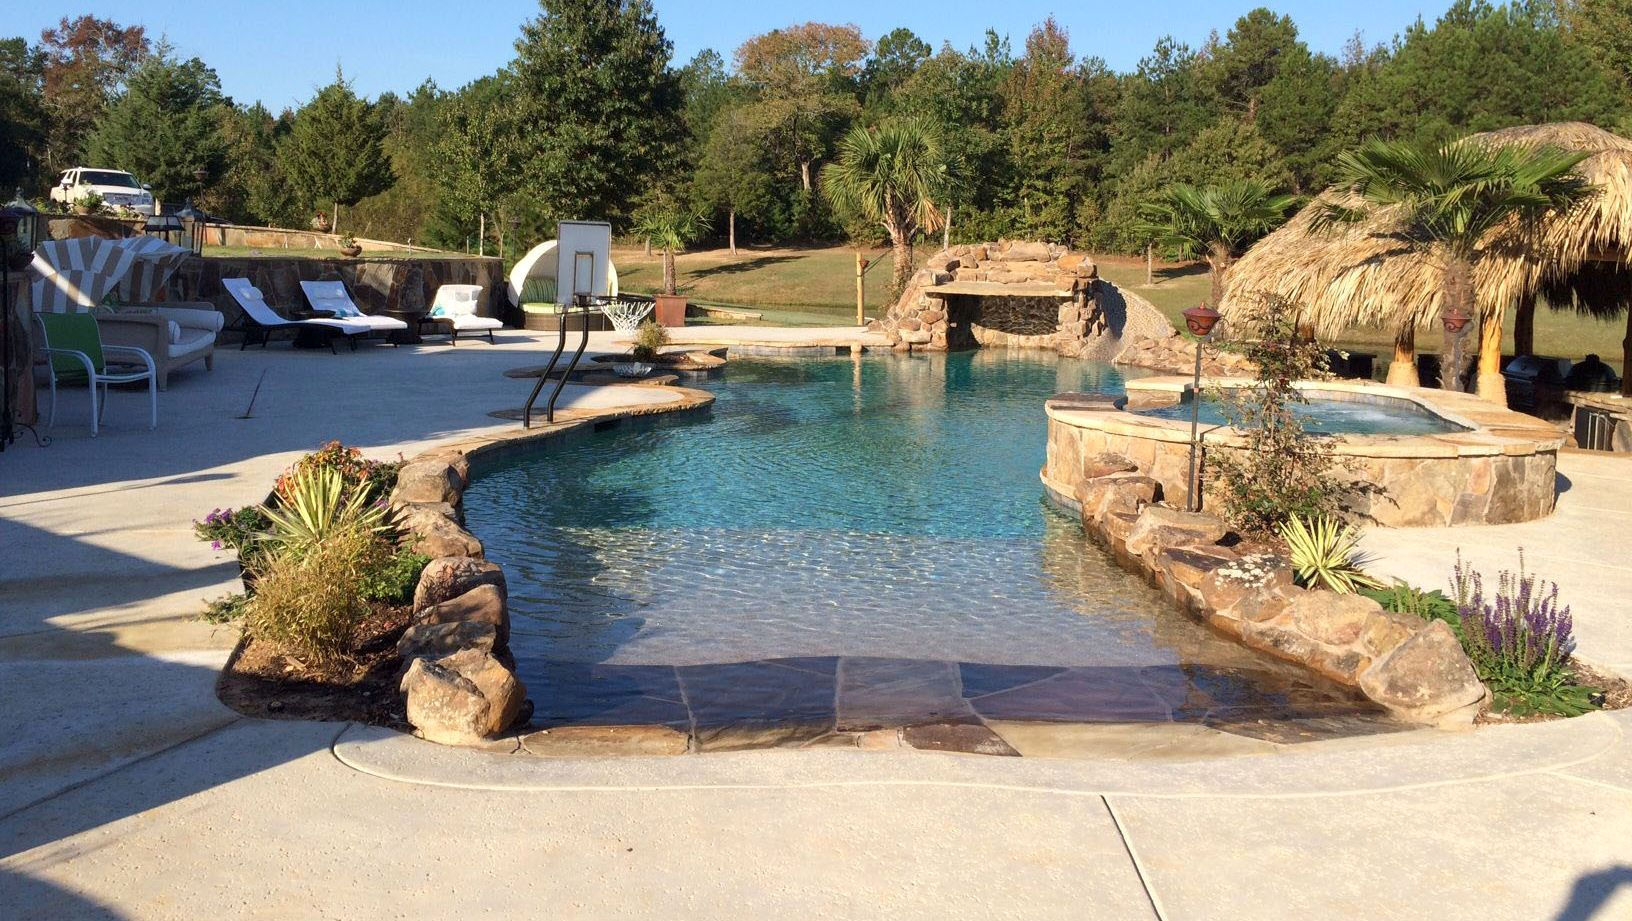 Jacuzzi Pool In Ground Custom Pool Builder Tyler Texas Gunite Pool Construction Above